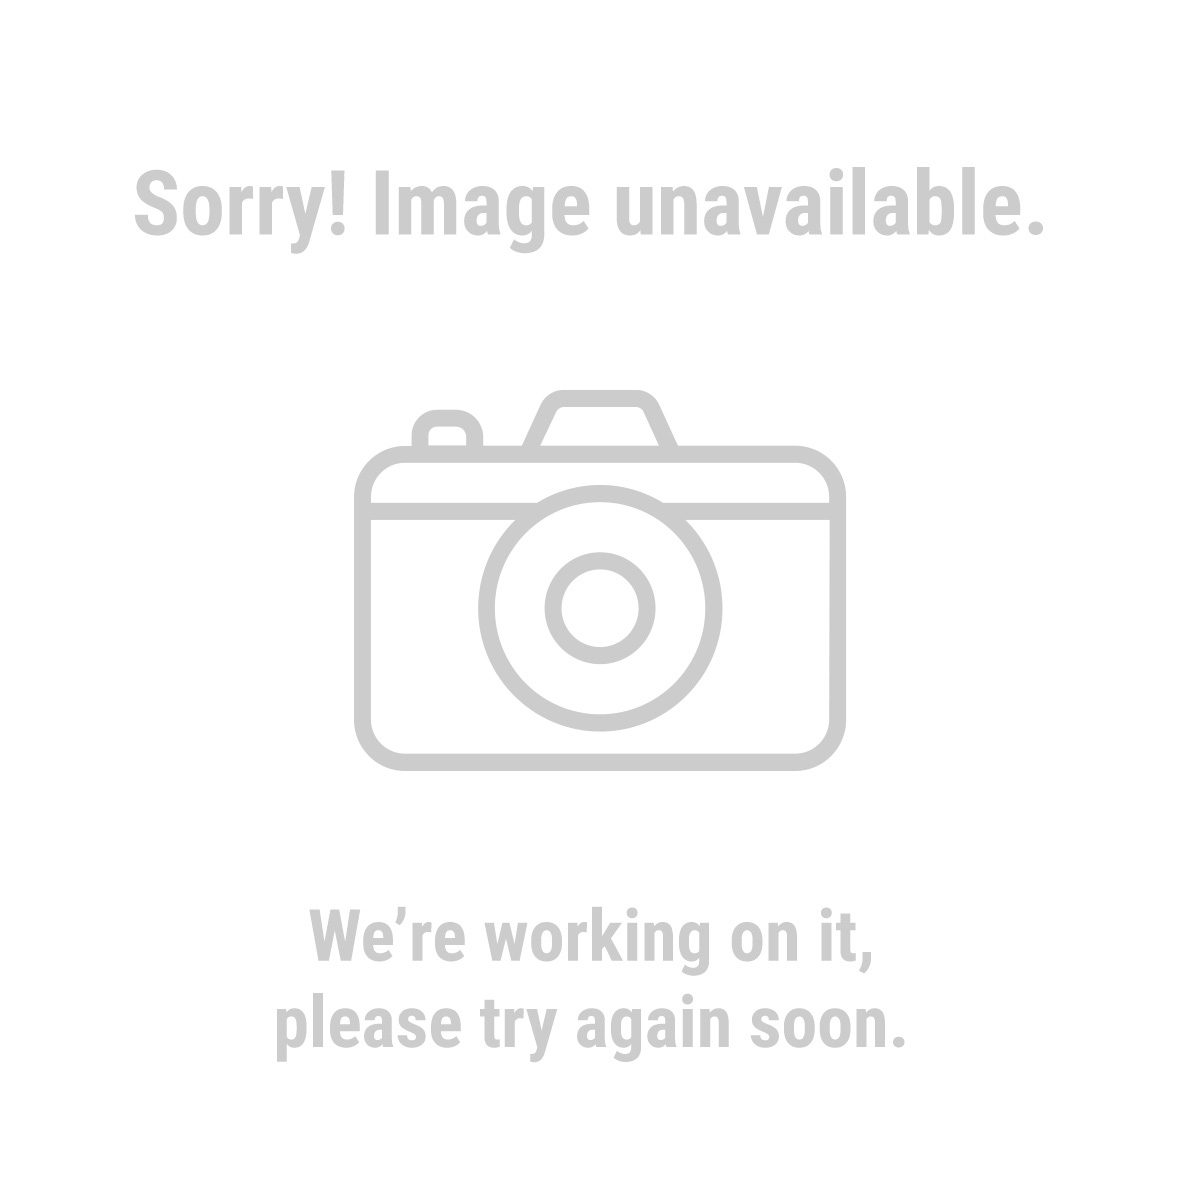 U.S. General 67287 1250 Lb. Capacity Mechanical Wheel Dolly